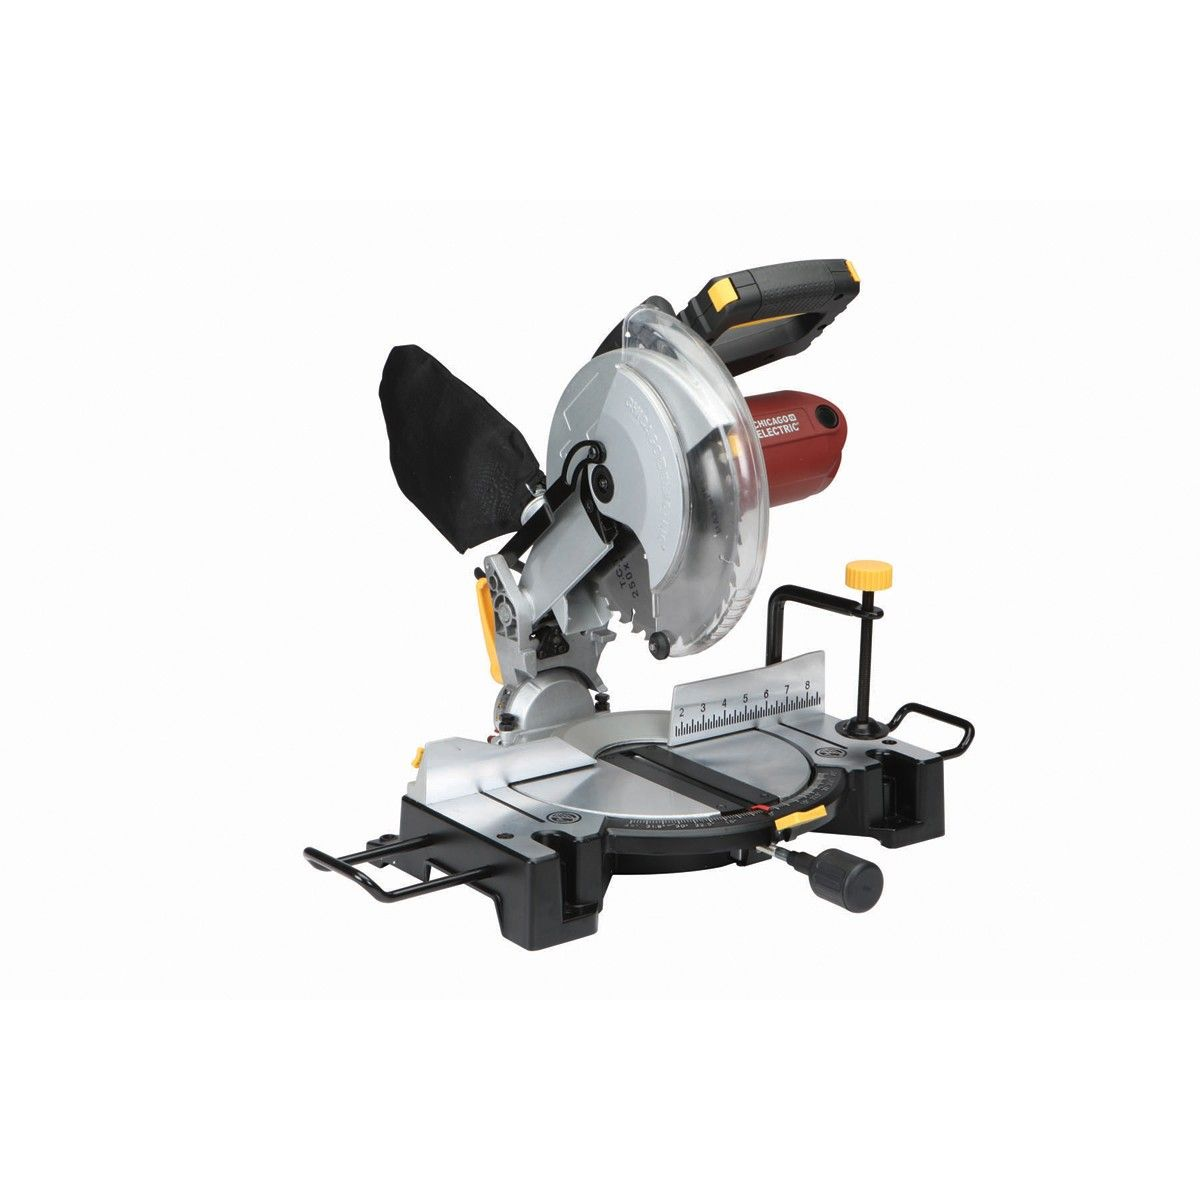 10 in. Compound Miter Saw with Laser Guide System   DIY ideas